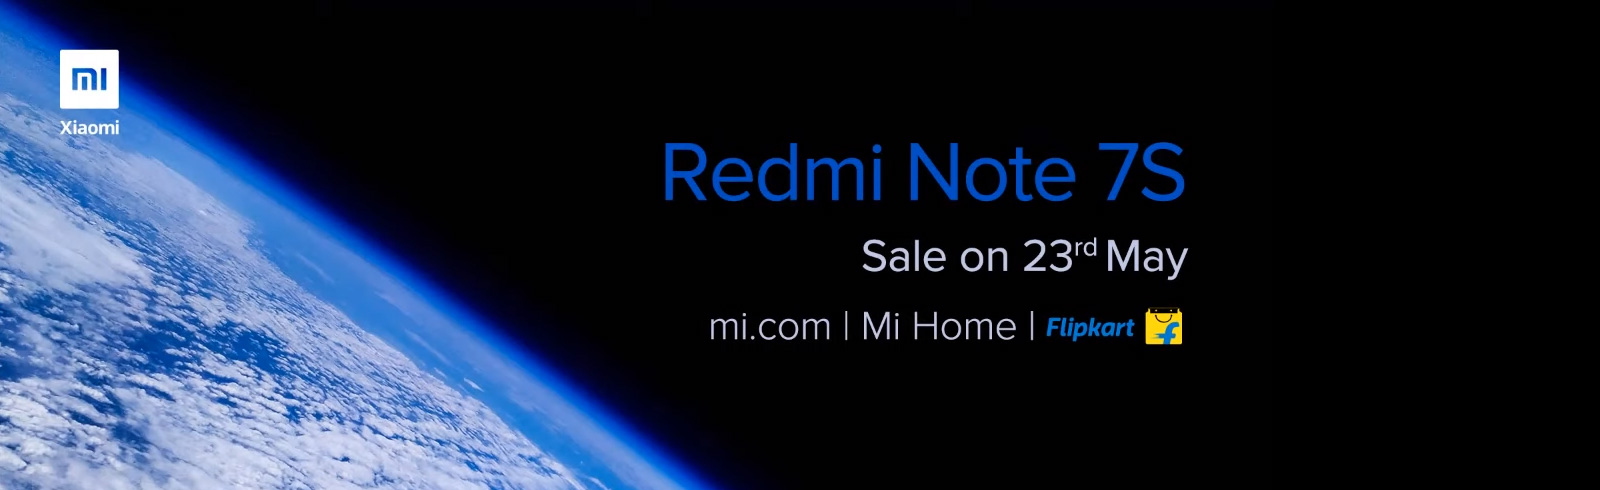 Xiaomi unveils the Redmi Note 7S in India with a 48MP primary camera